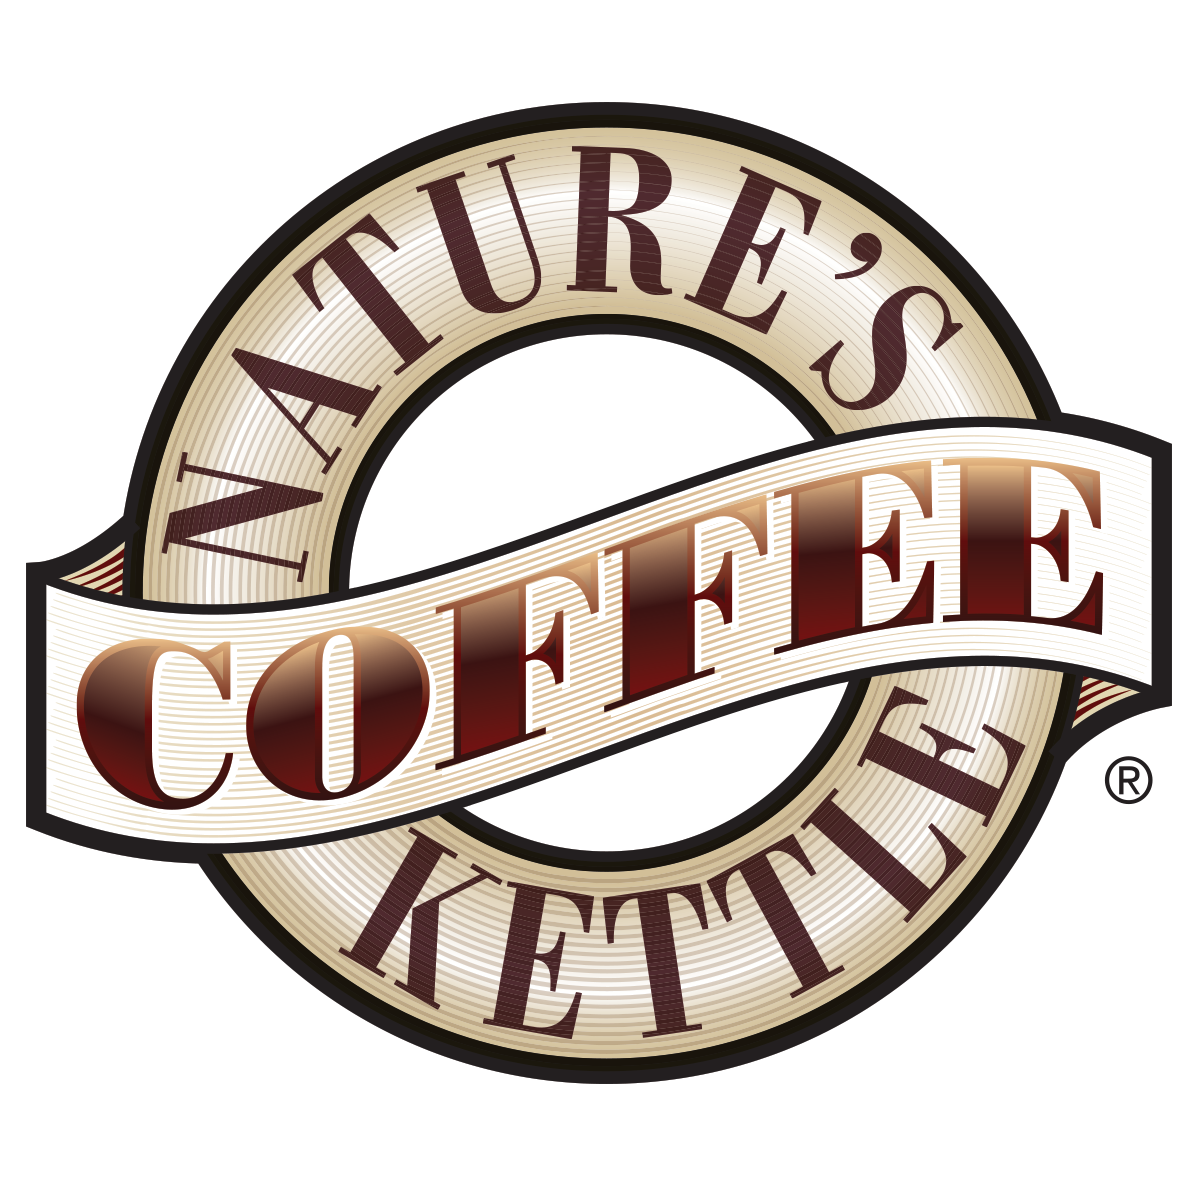 natures coffee kettle logo